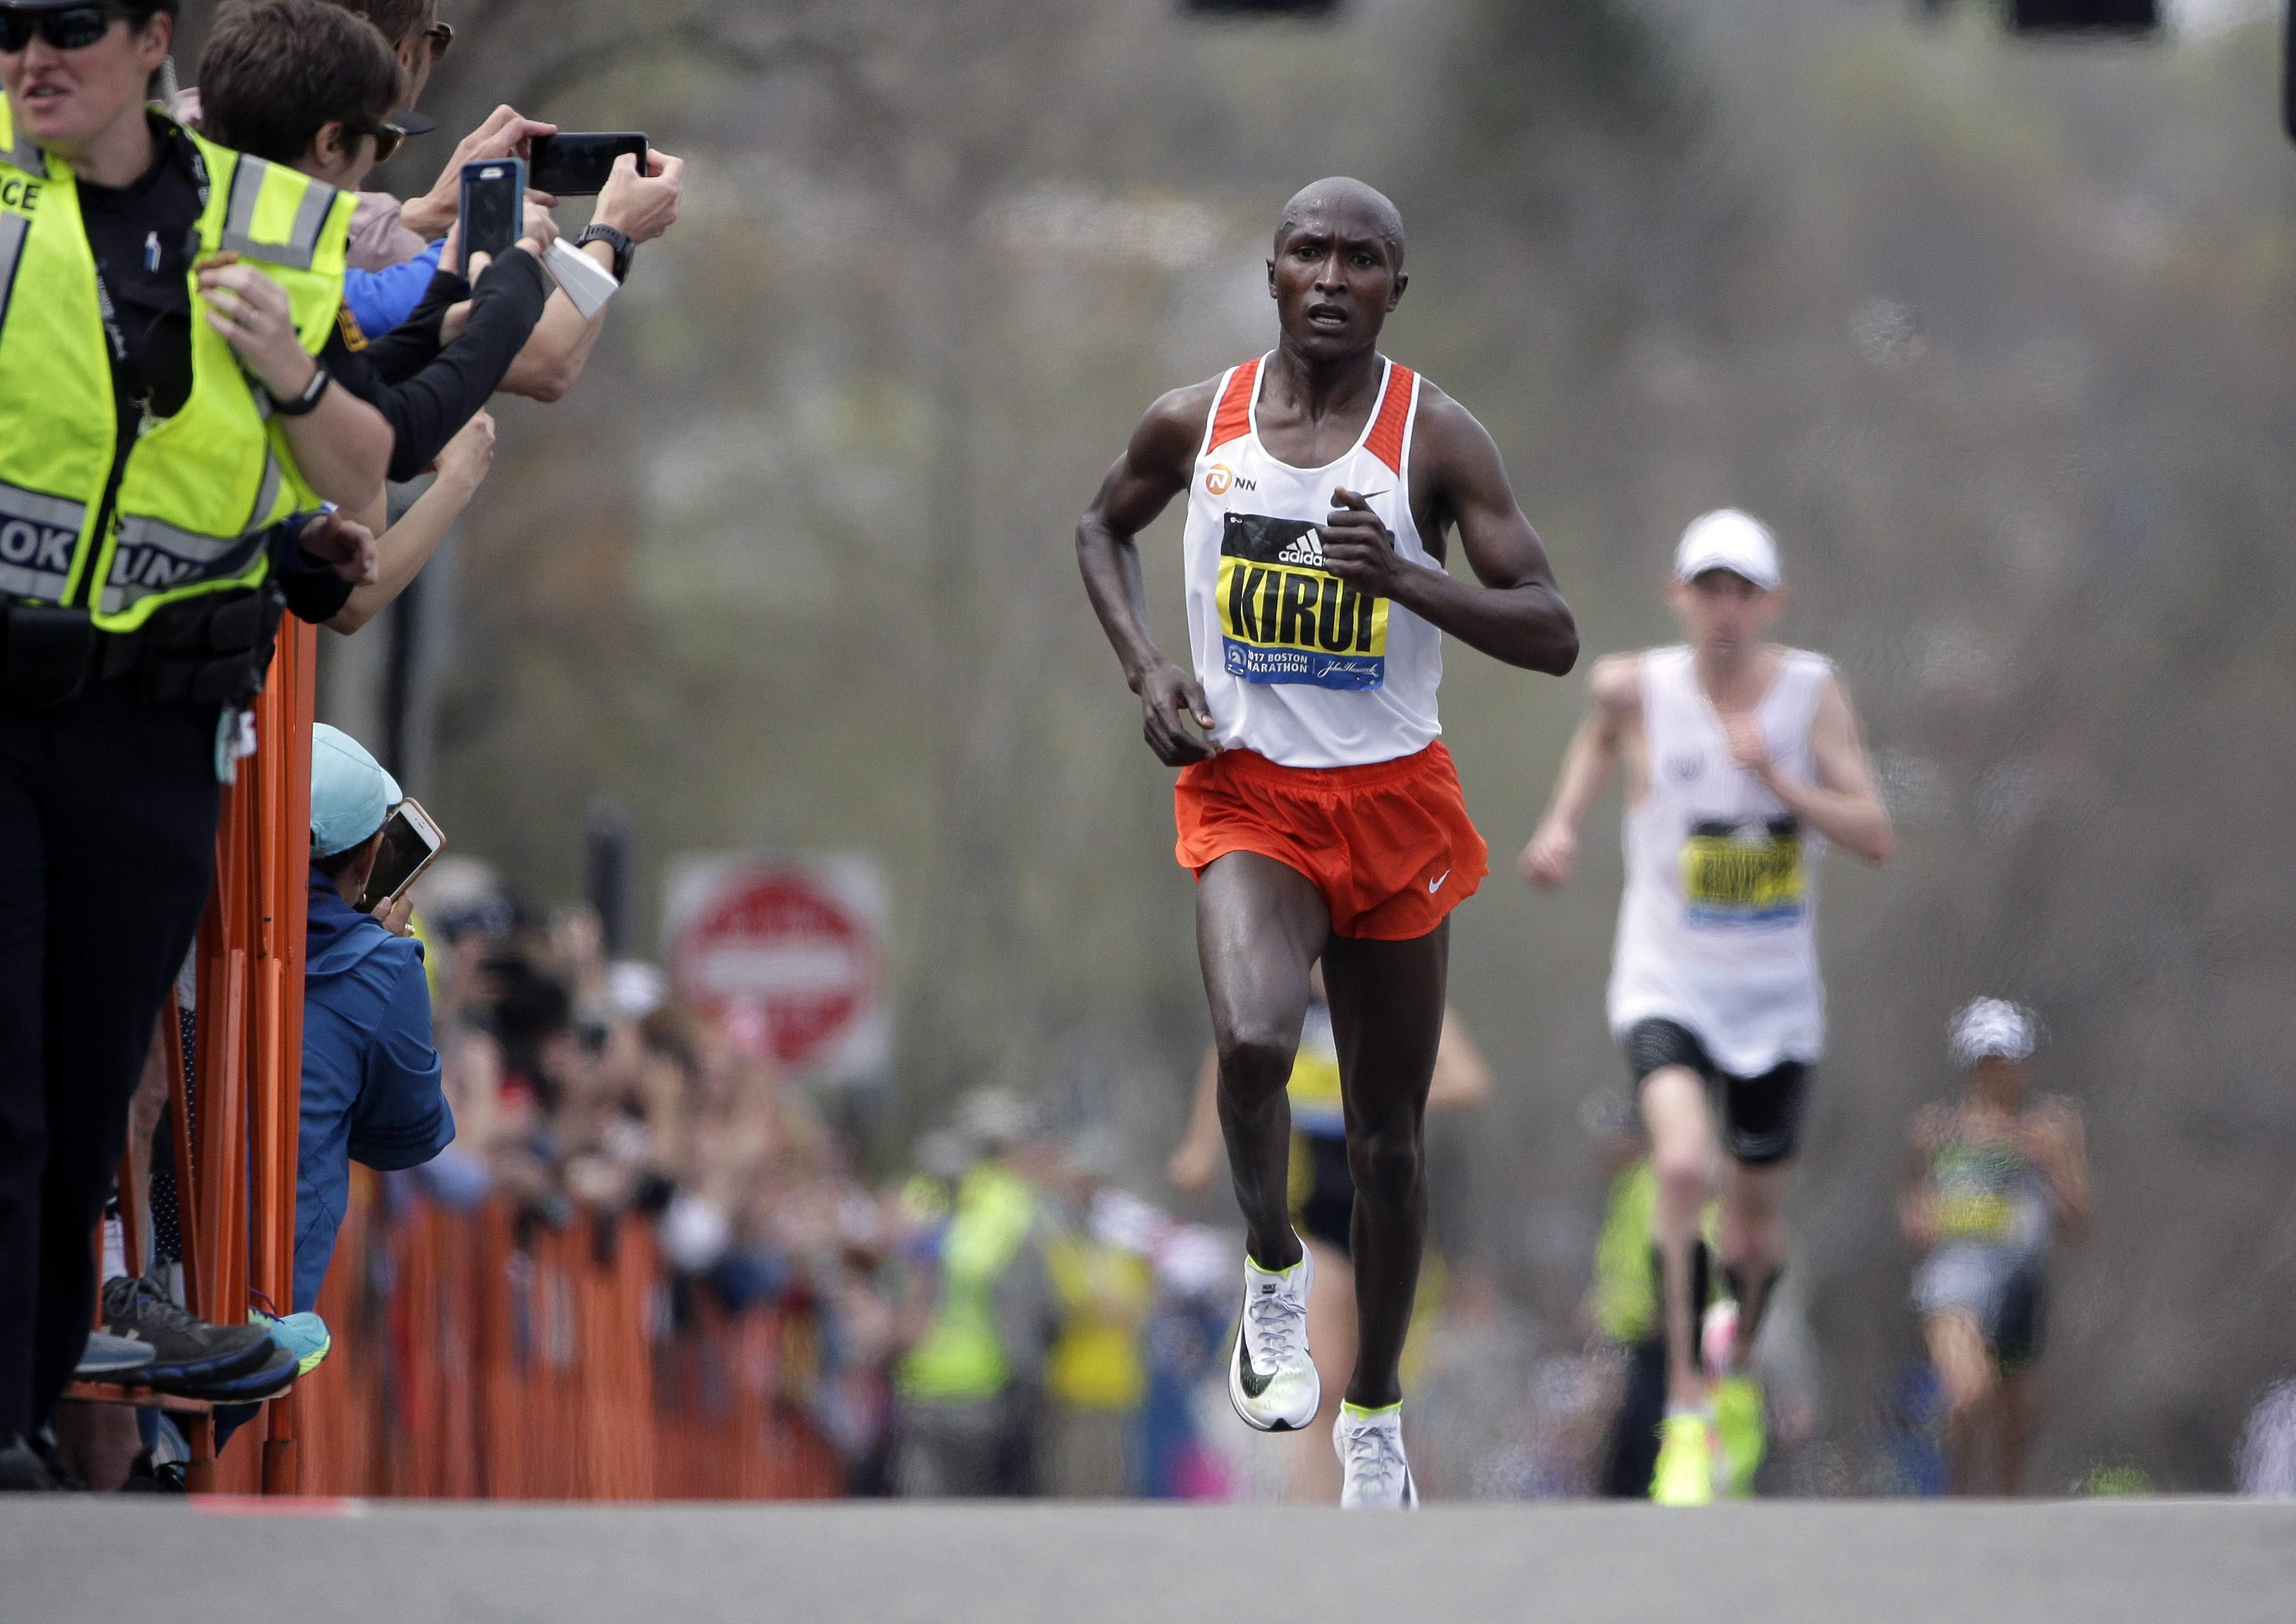 Geoffrey Kirui, of Kenya, leads Galen Rupp, of the United States, and the rest of the field along the course of the 121st Boston Marathon on Monday, April 17, 2017, in Brookline, Mass. THE ASSOCIATED PRESS